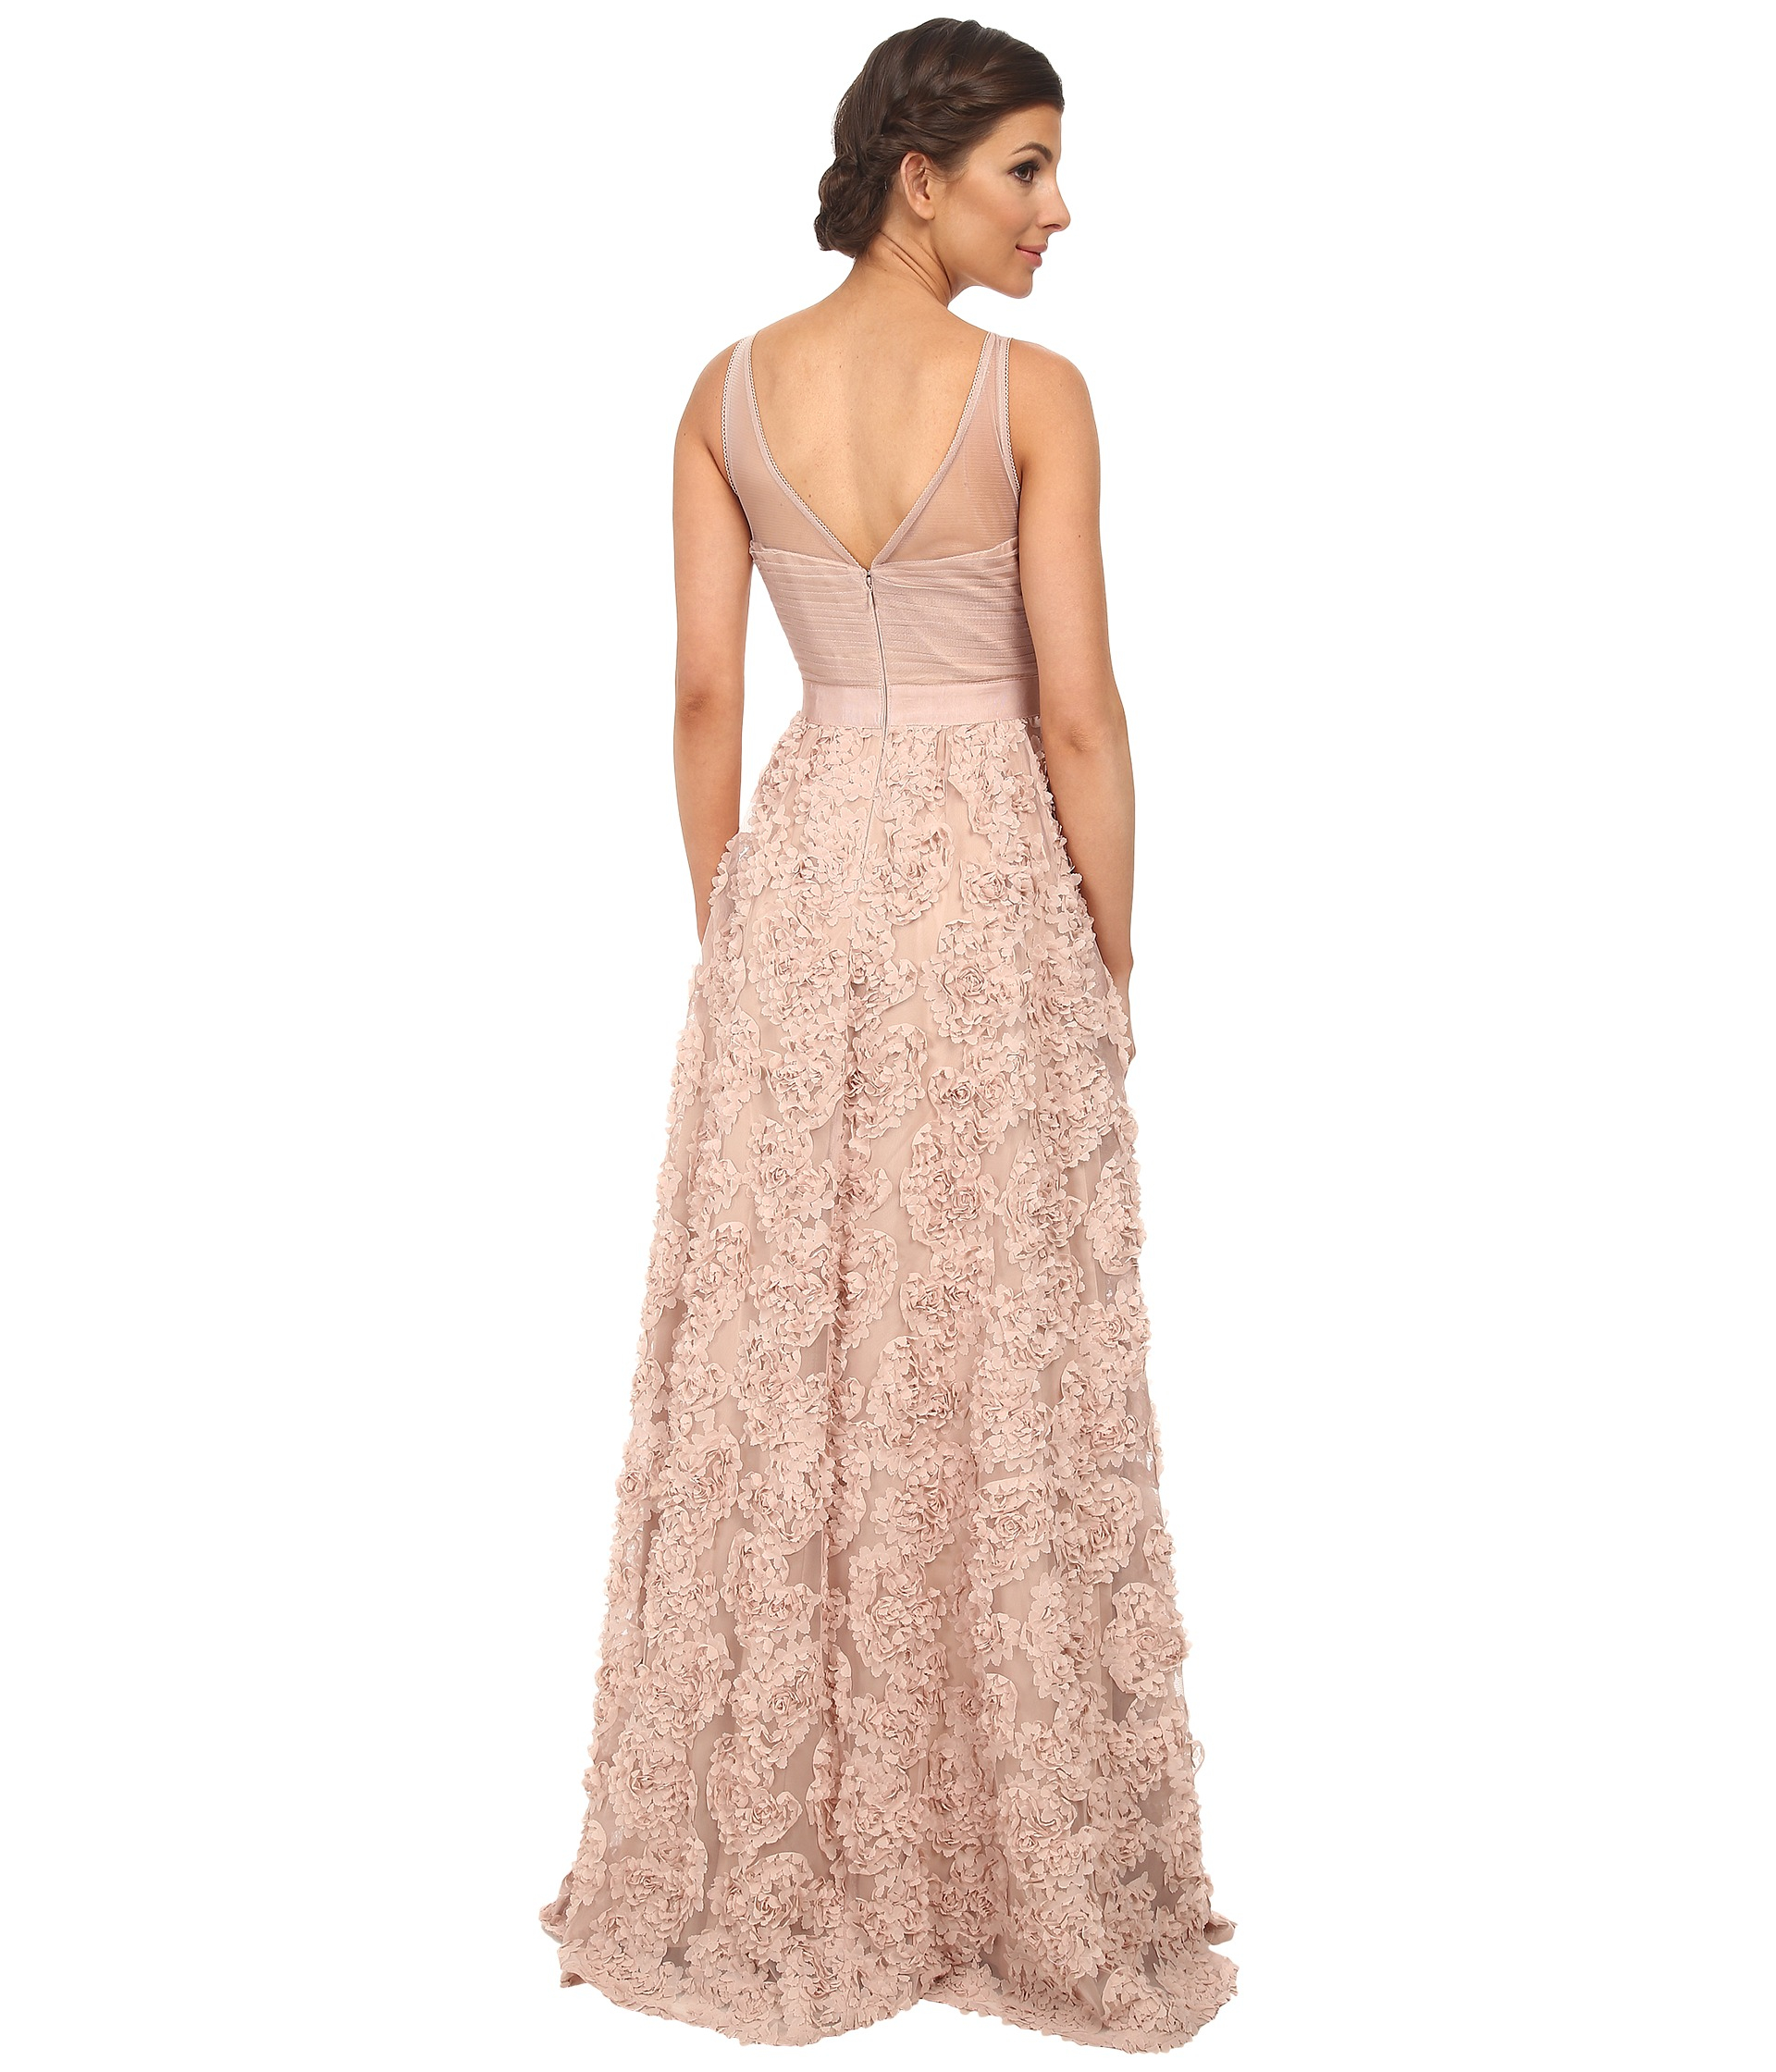 75a411eed6b8 Adrianna Papell Sleeveless Tulle Chiffon Petal Ballgown in Natural ...